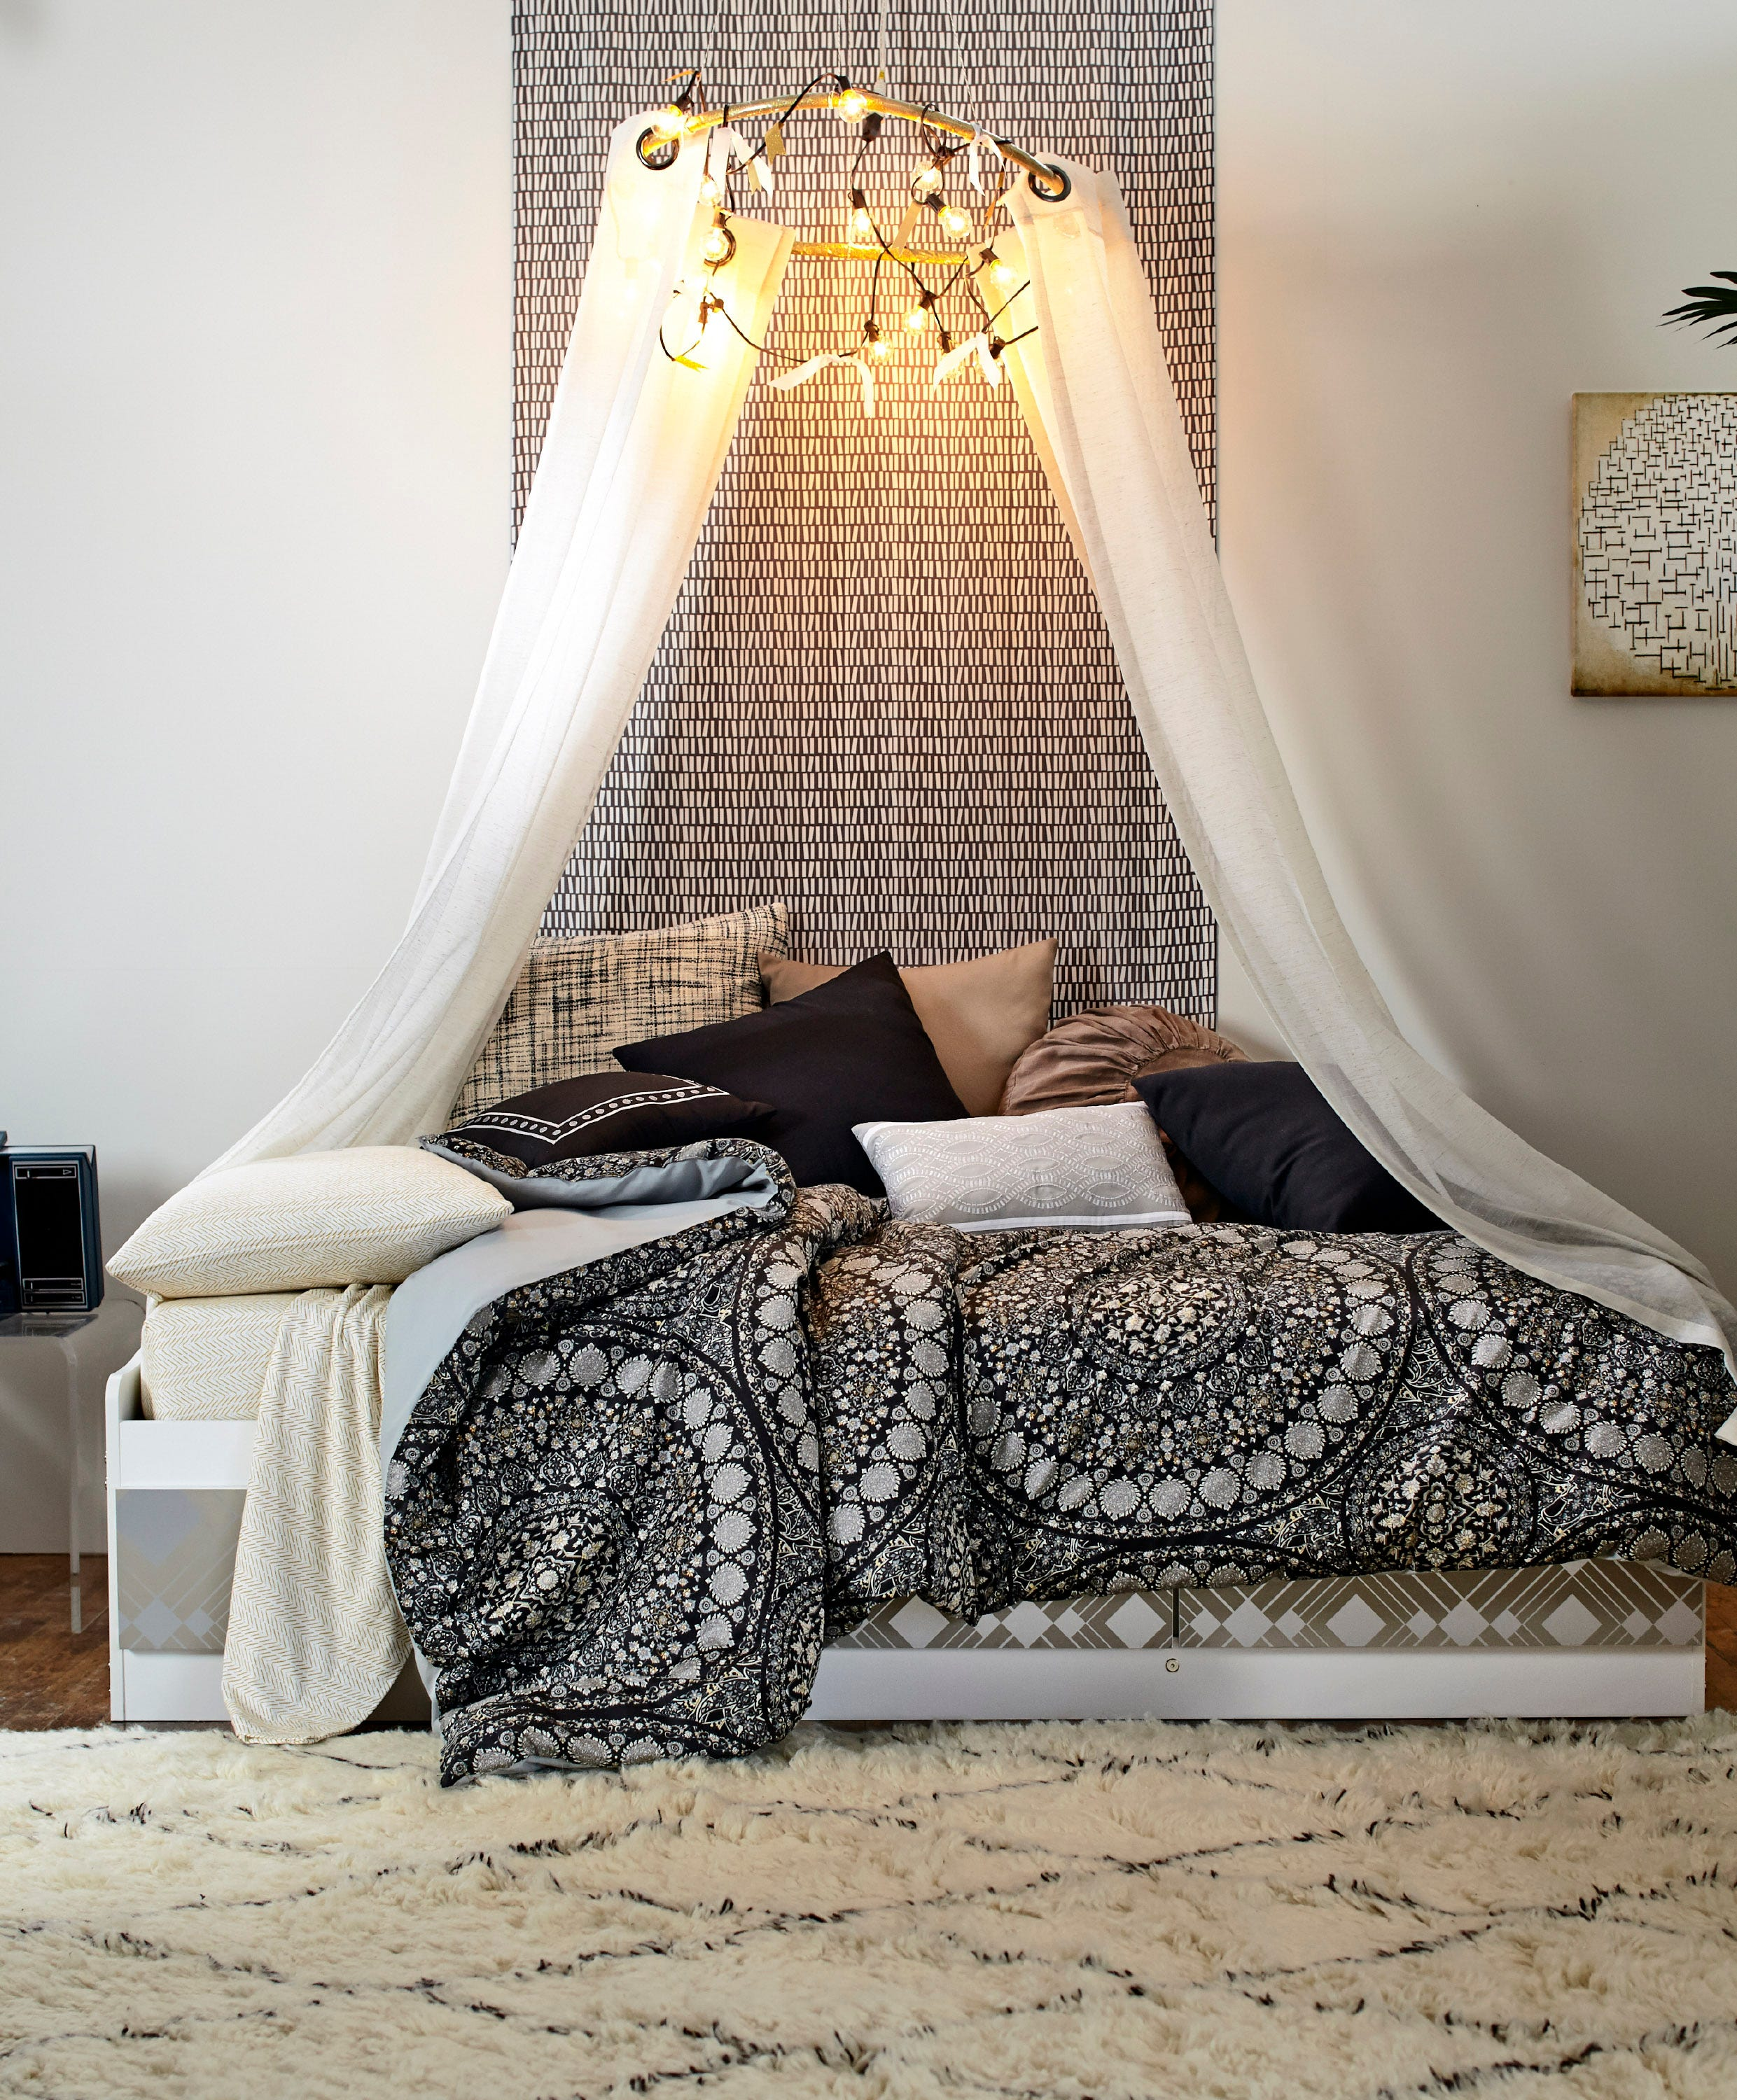 & DIY dorm redo: a canopy chandelier and other simple projects